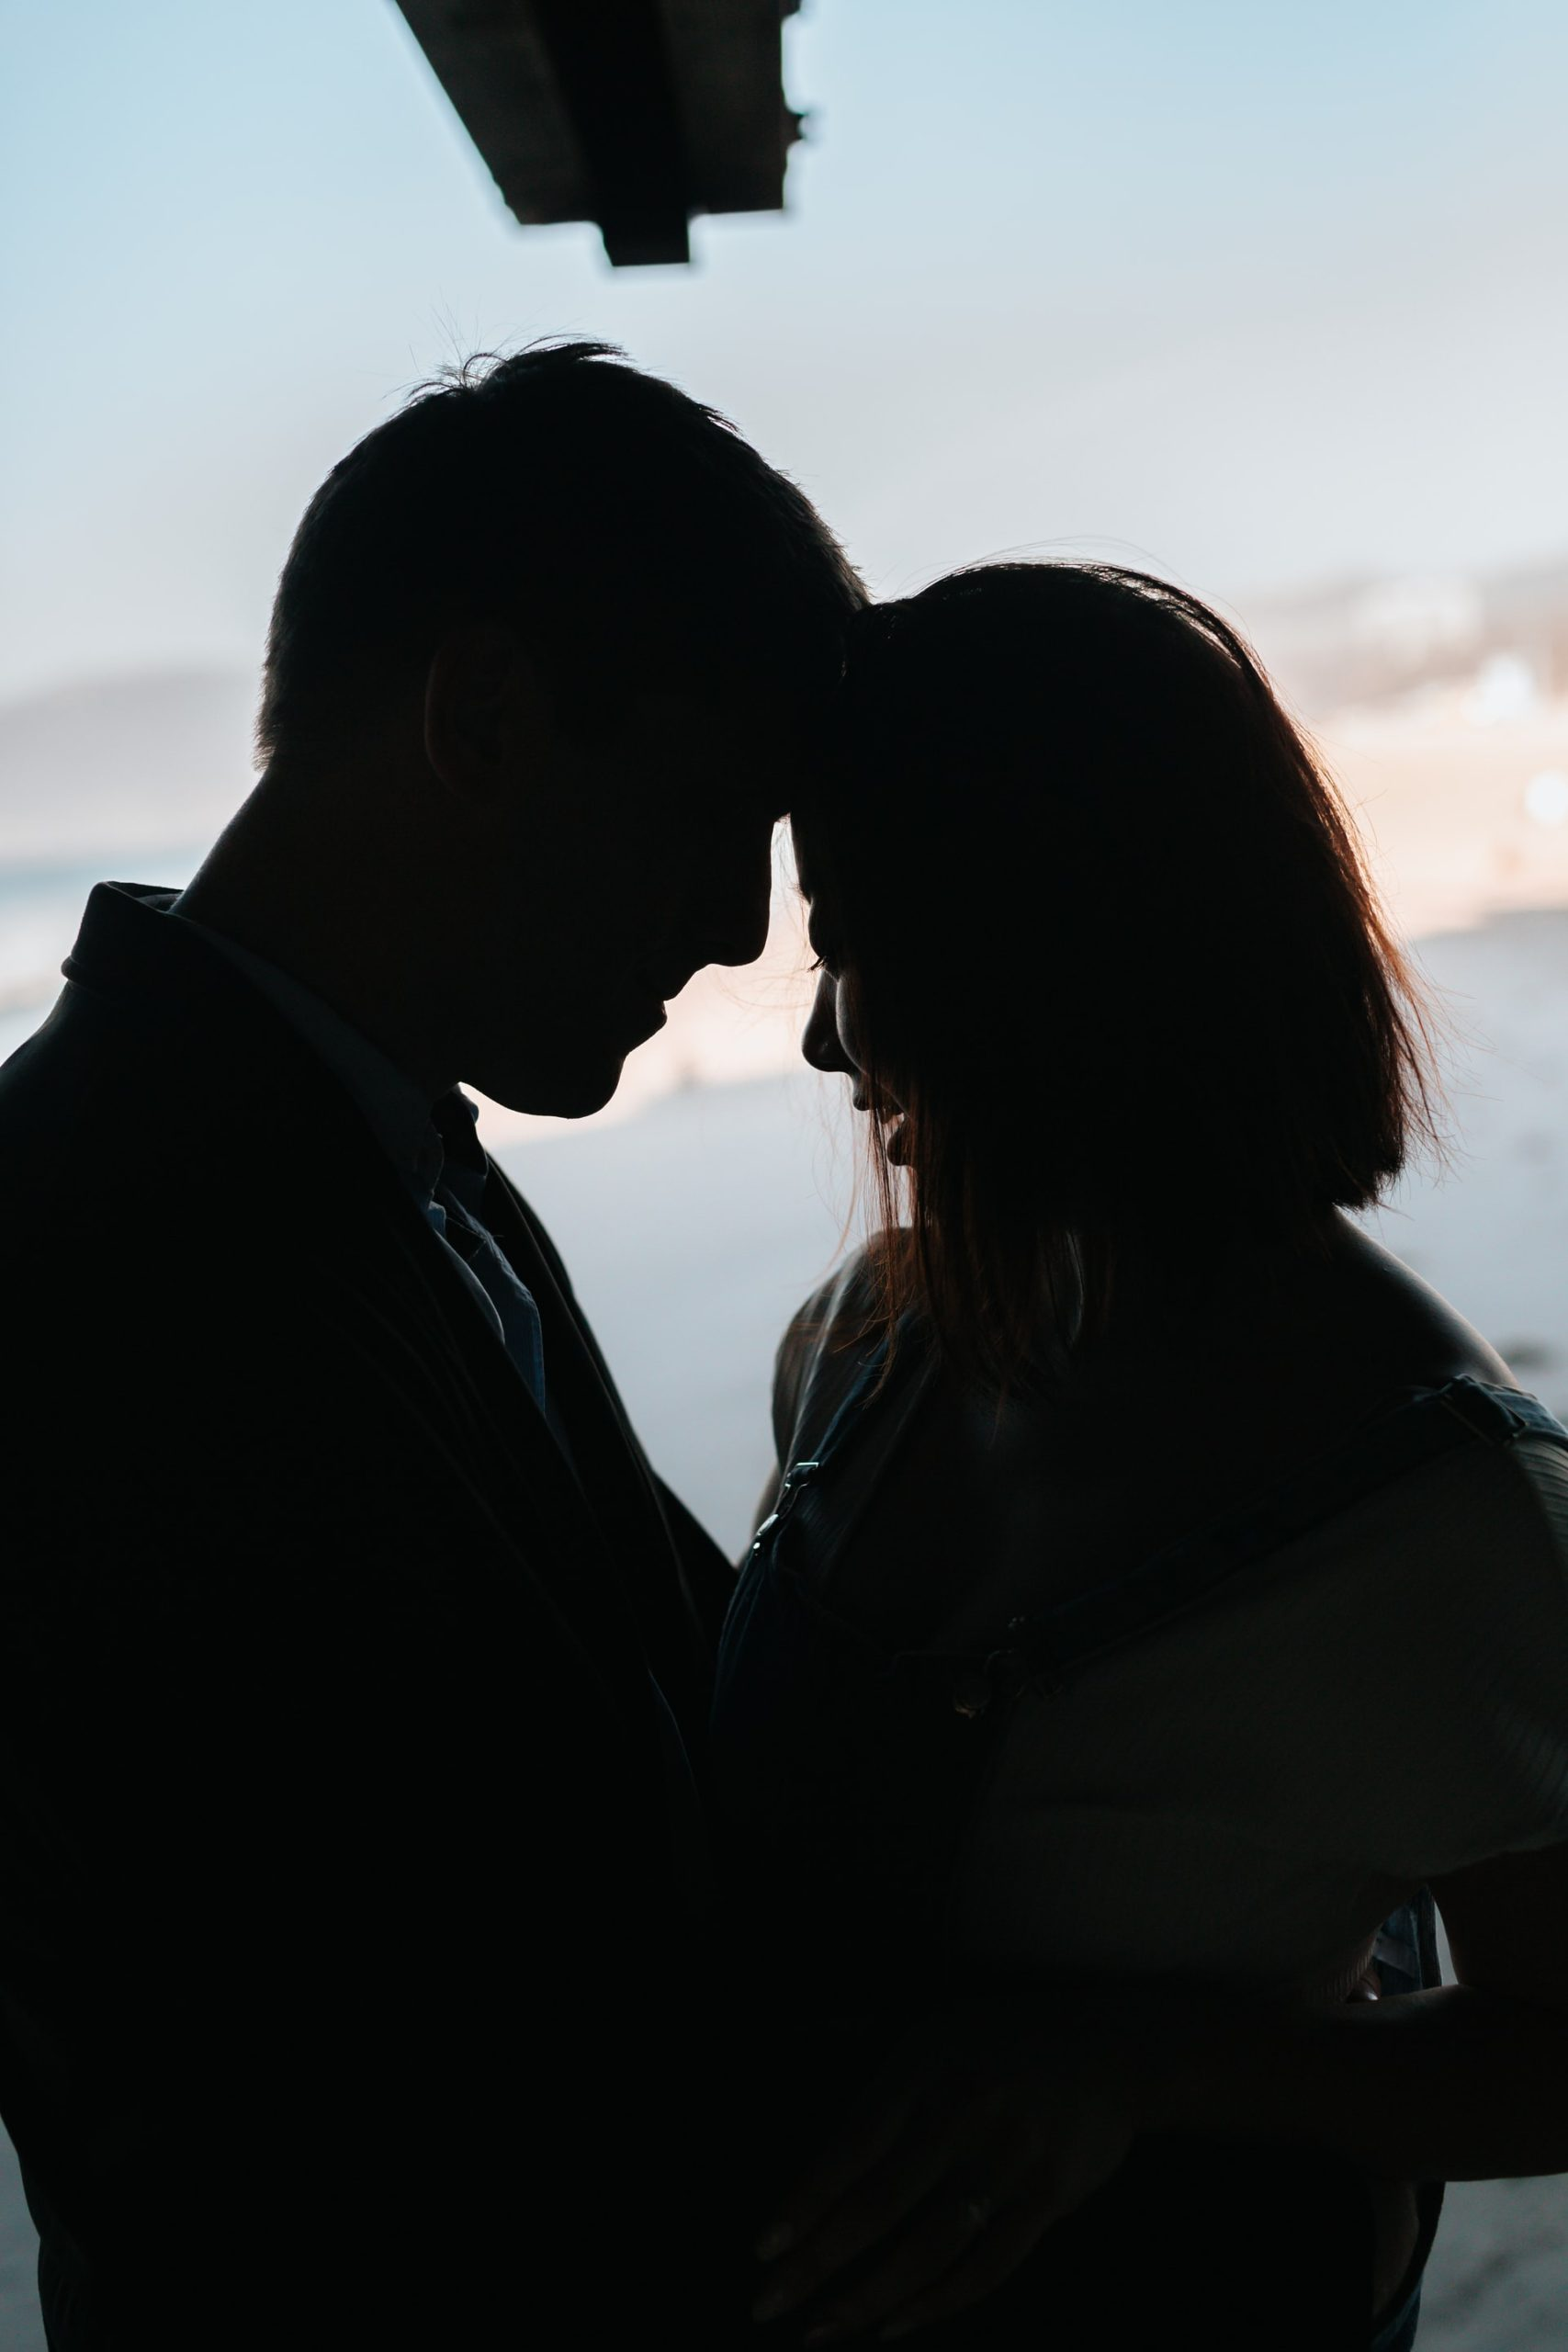 Best Background Checks Dating Article Image